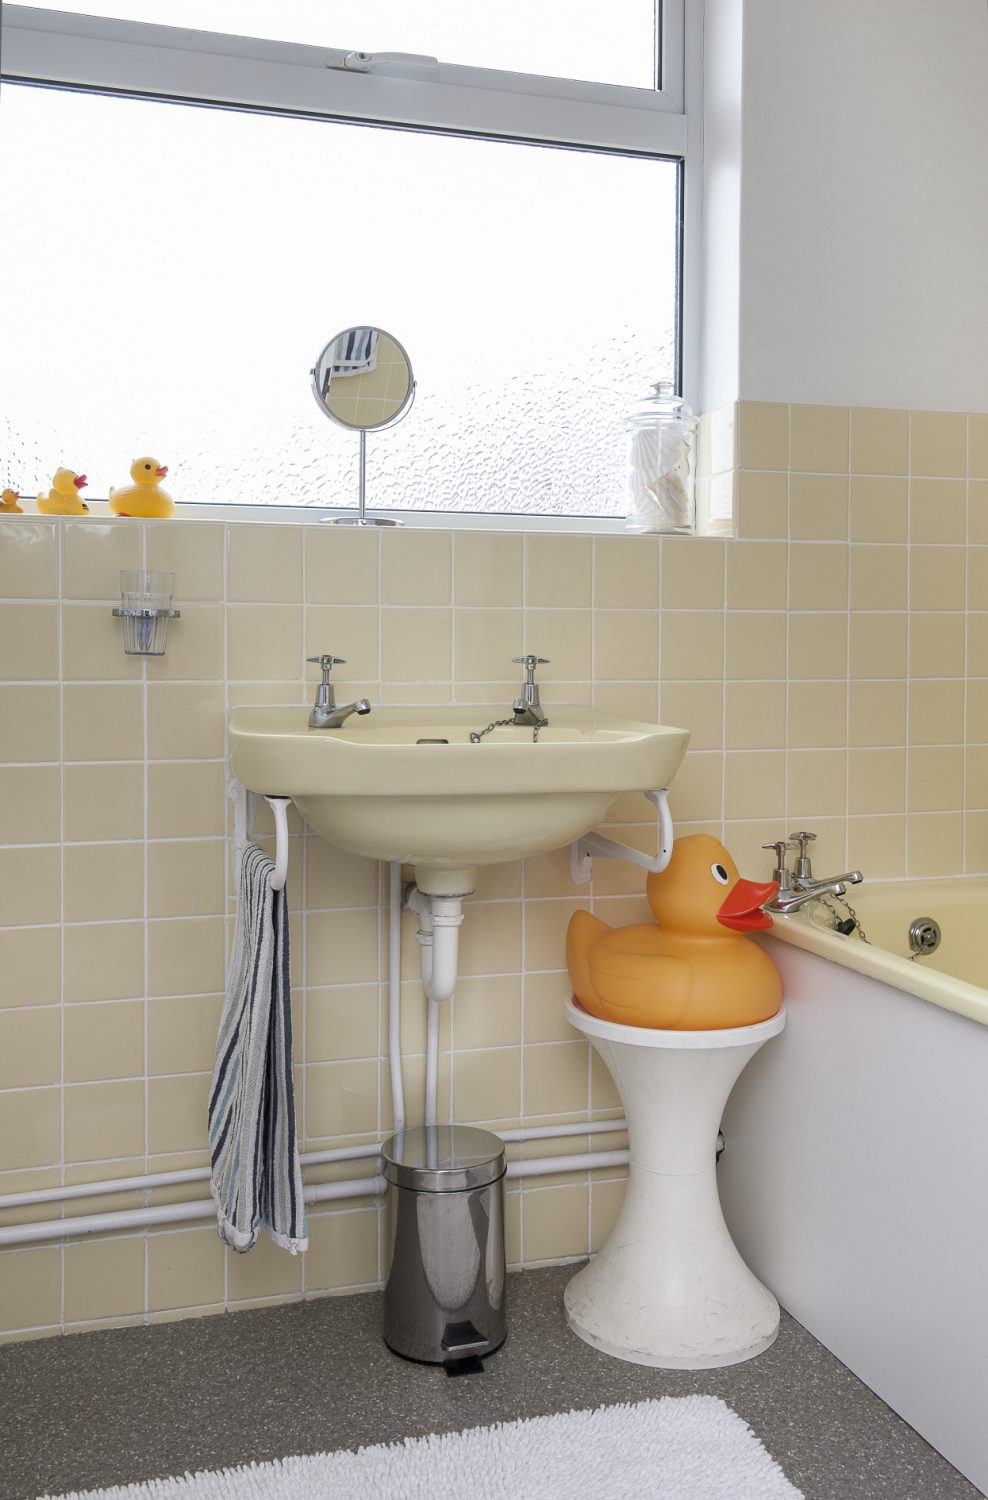 James has retained the original buttermilk-yellow bathroom suite, which is in immaculate condition